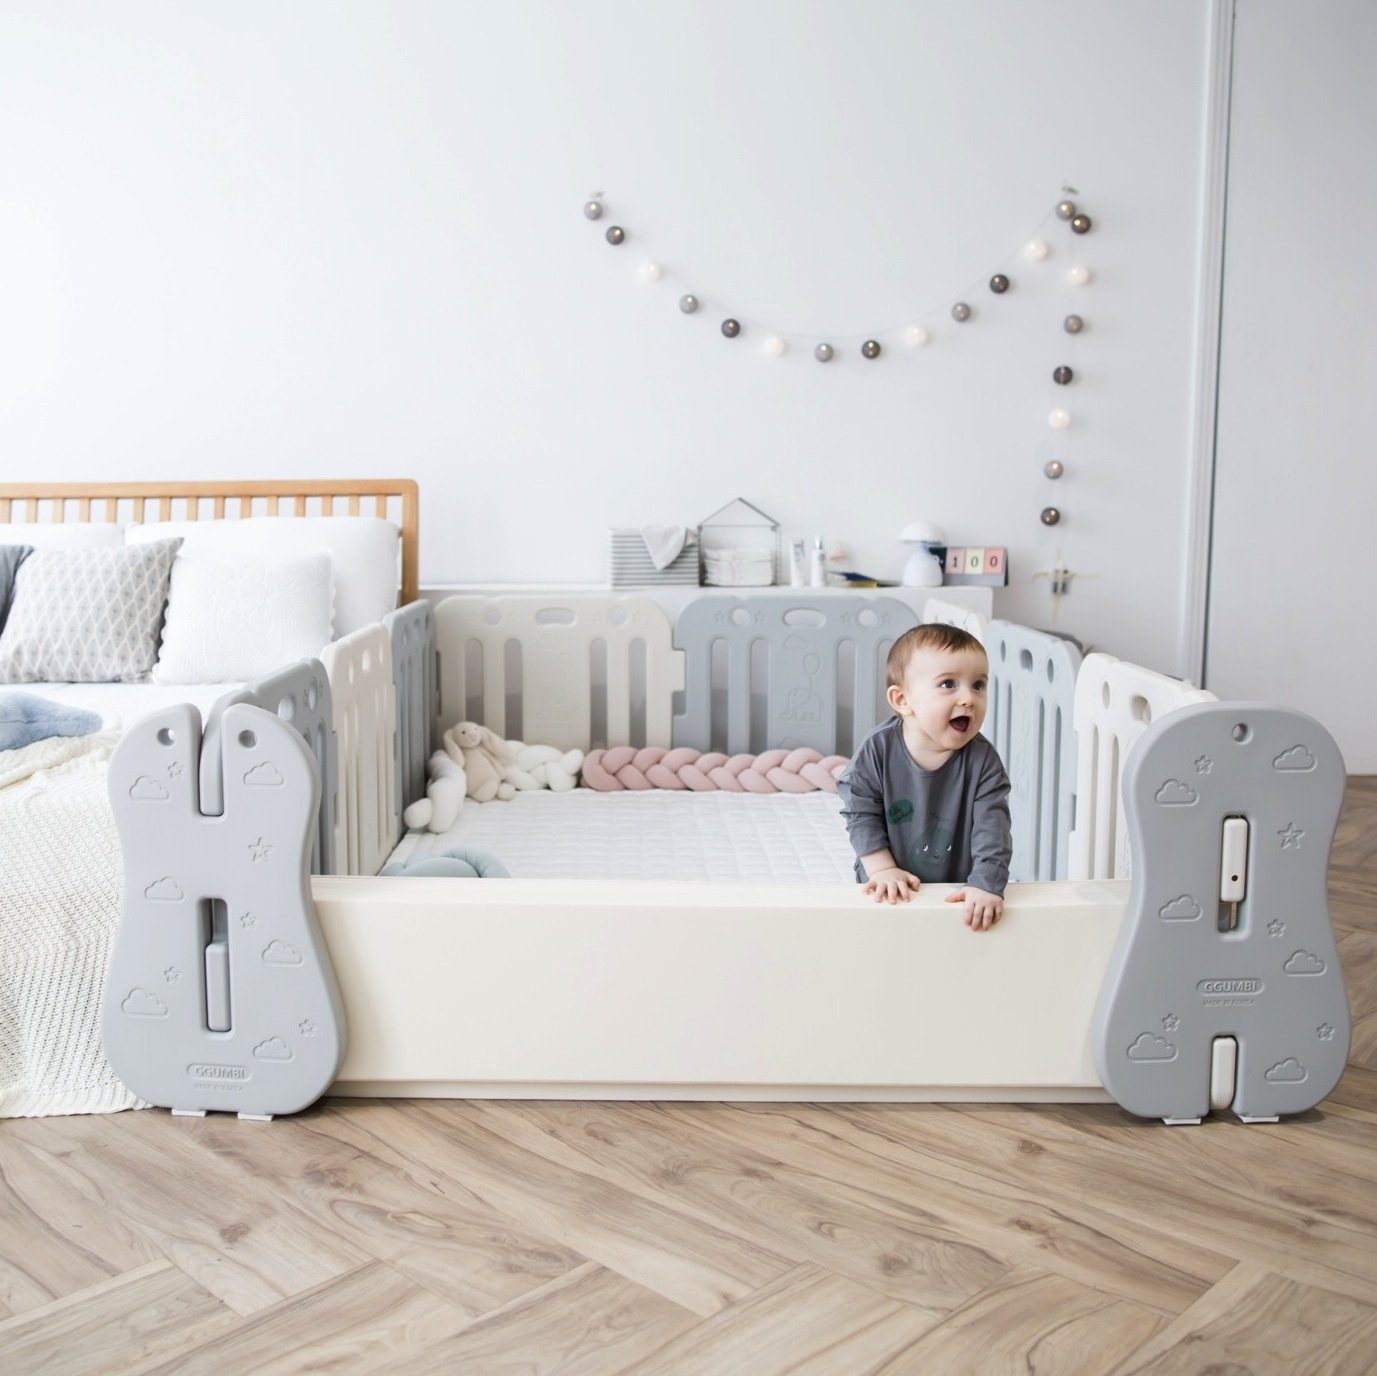 Baby Room Set - Family Guard (inclusive of premium Play mat!)